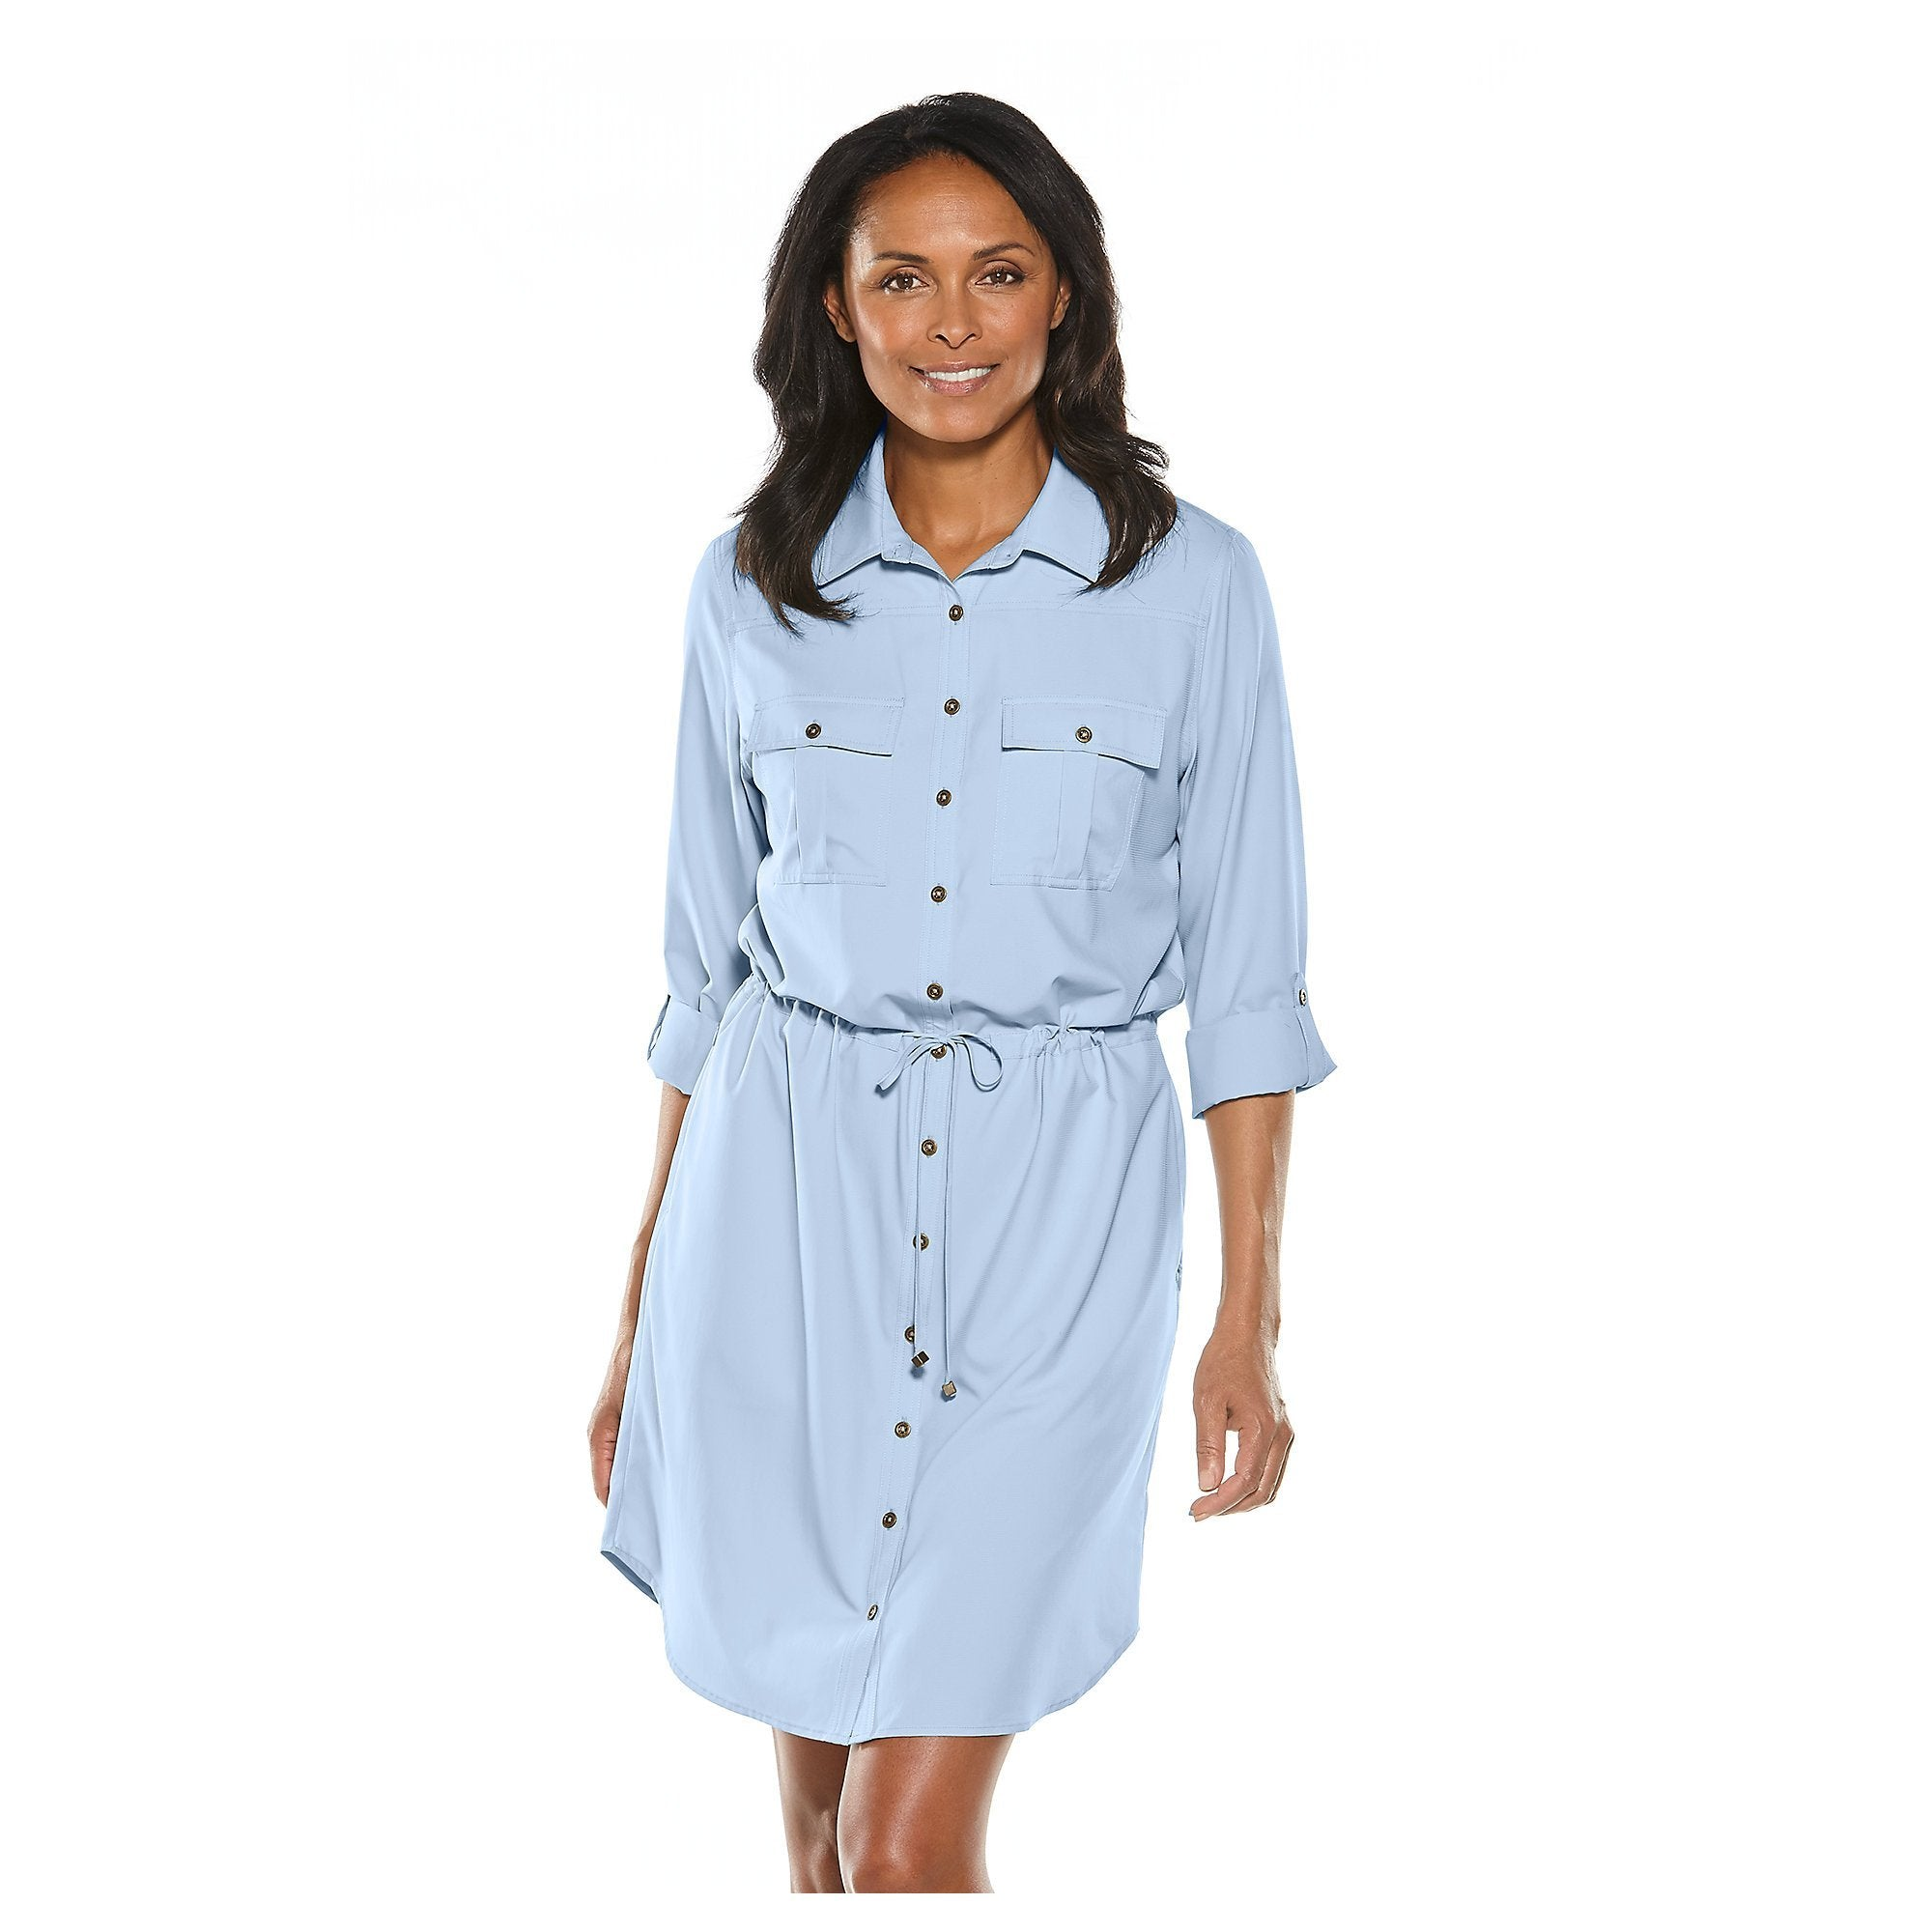 TRAVEL SHIRT DRESS (XXL ONLY) - Molly's! A Chic and Unique Boutique